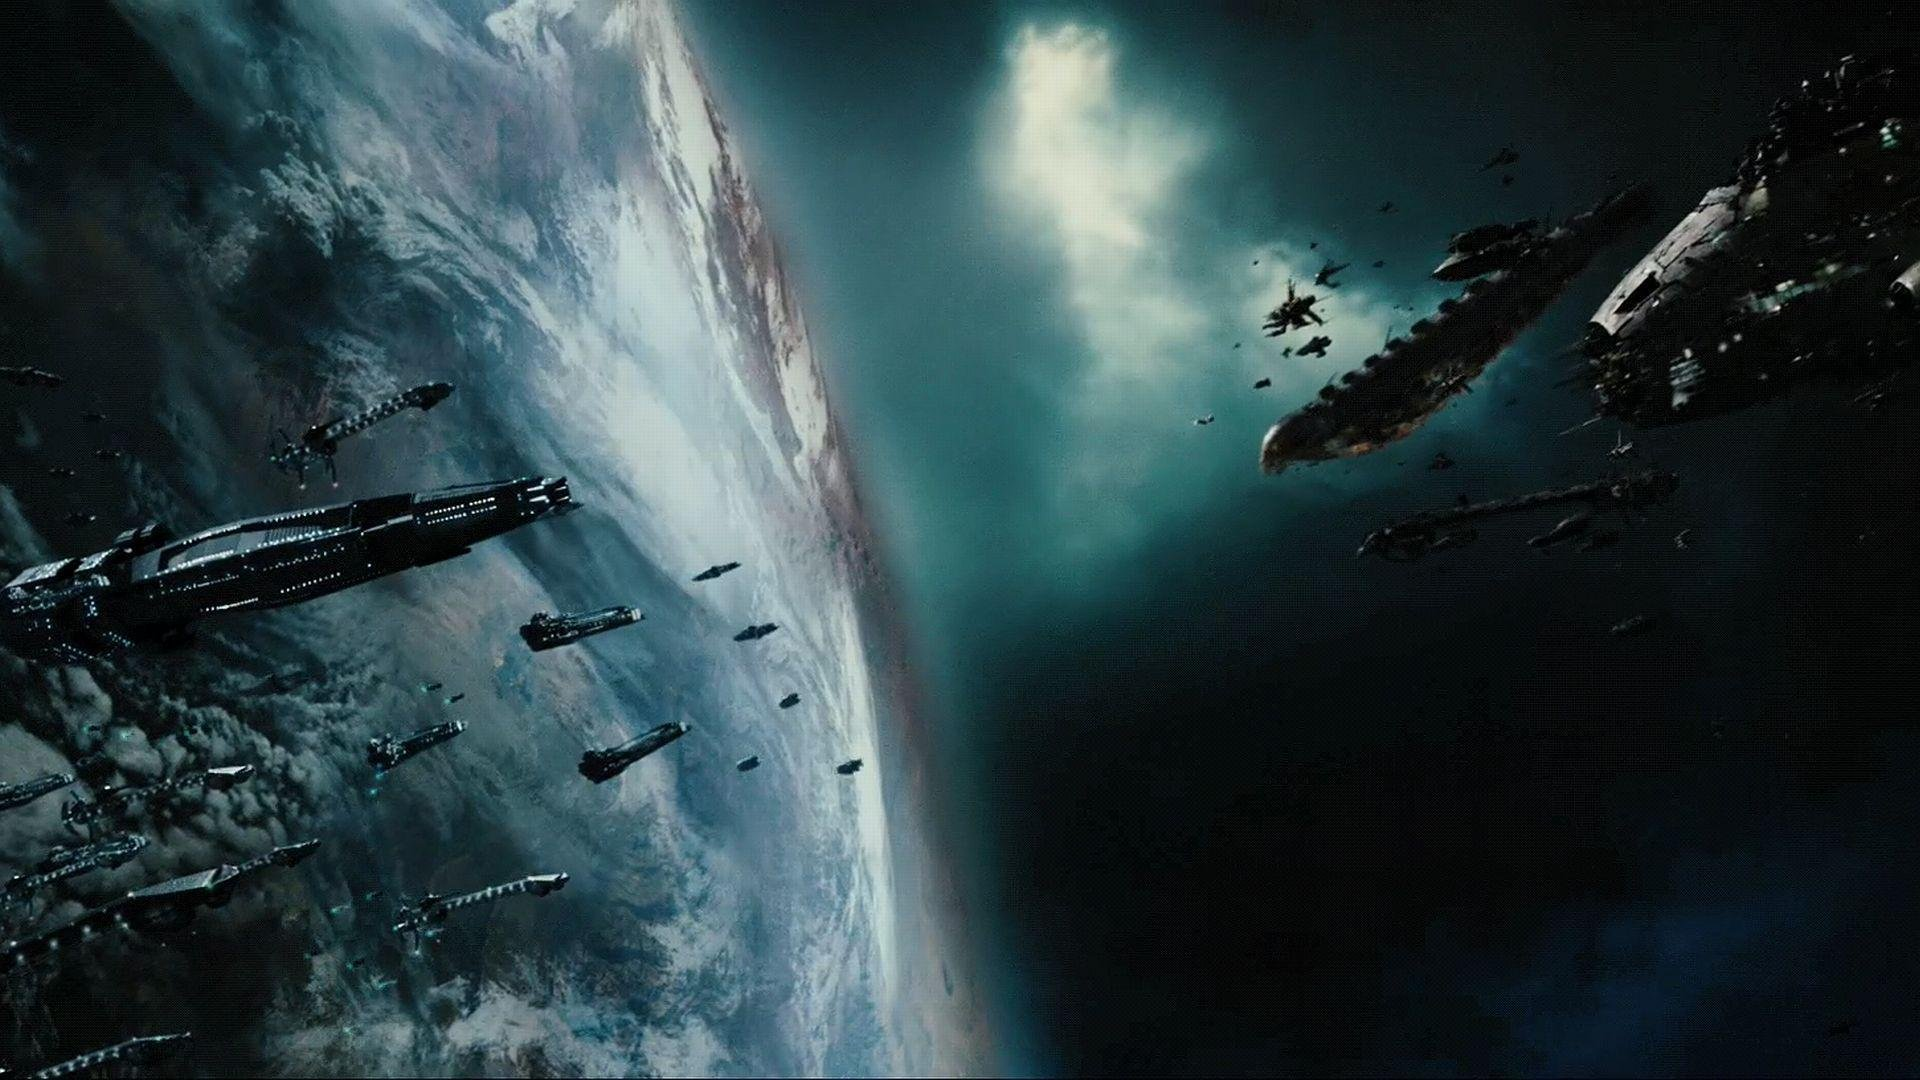 1920x1080 - Space Invasion Wallpapers 27